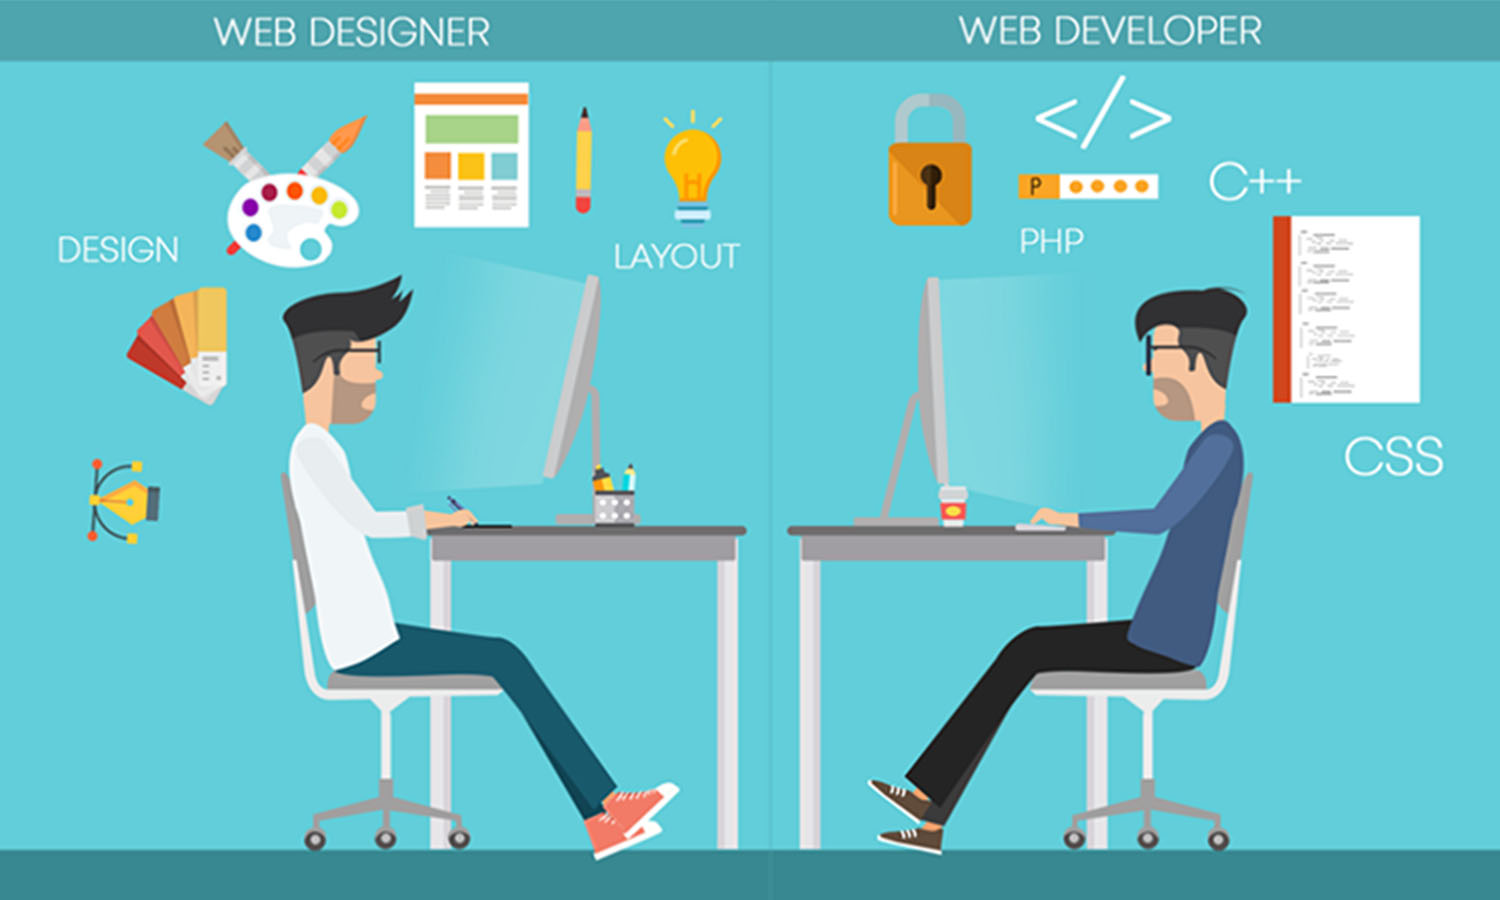 How to Define Web Designing and Web Development?